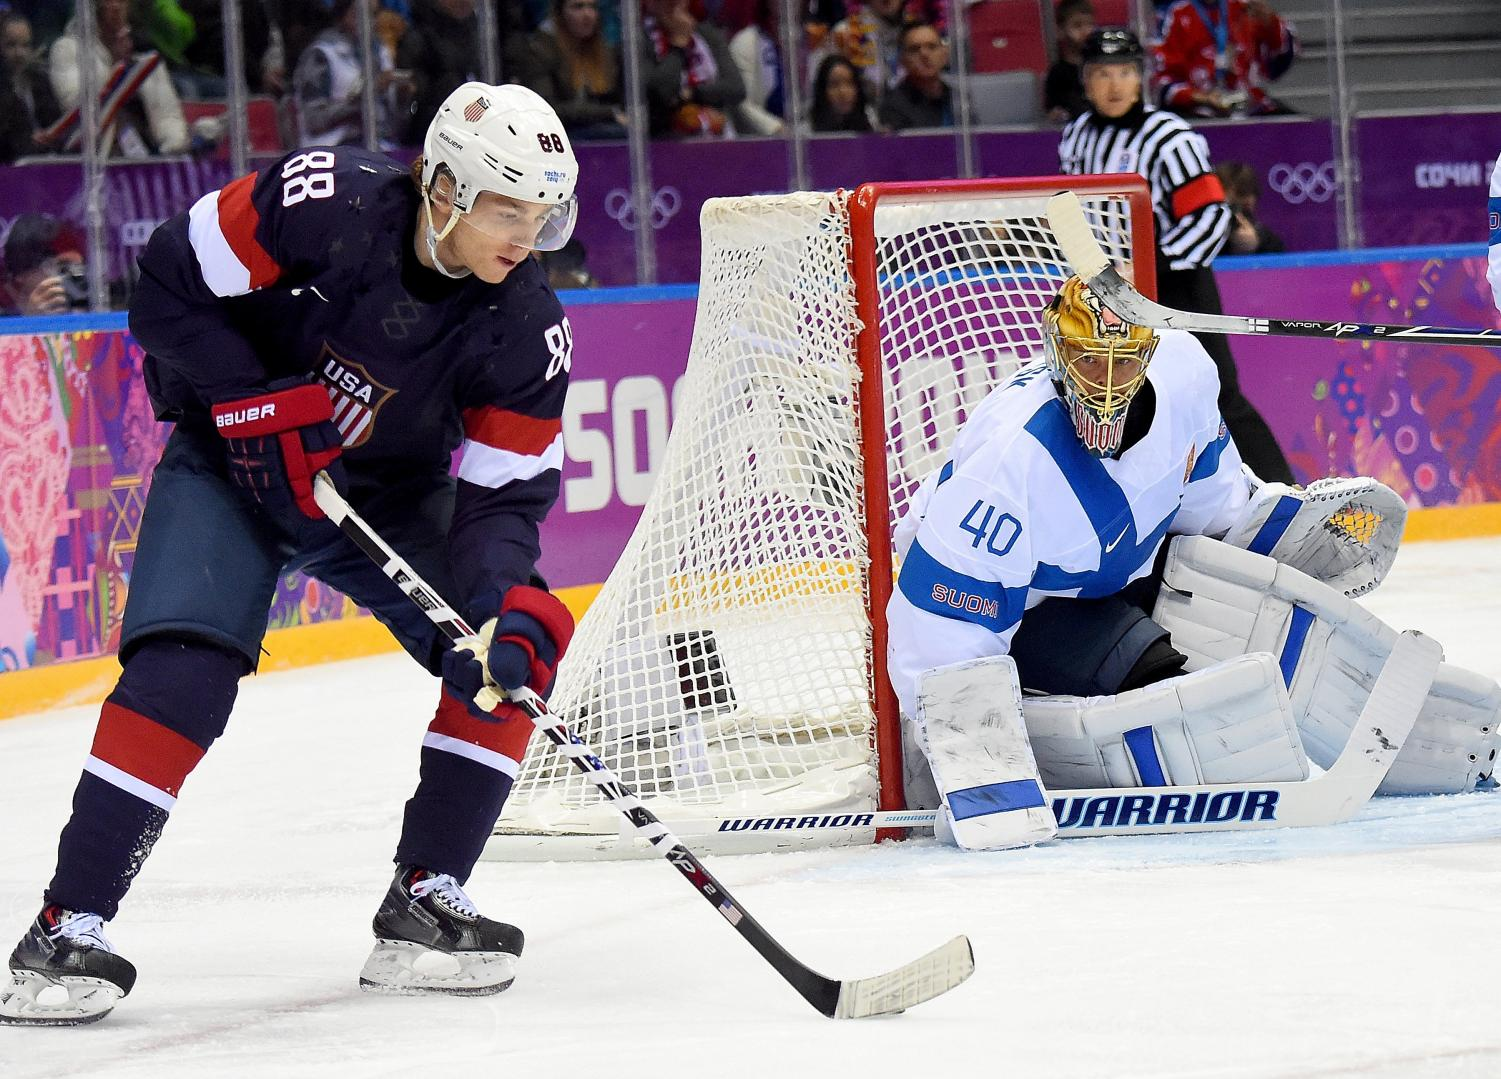 NHL players Patrick Kane and Tukka Rask in the 2014 Bronze medal game.